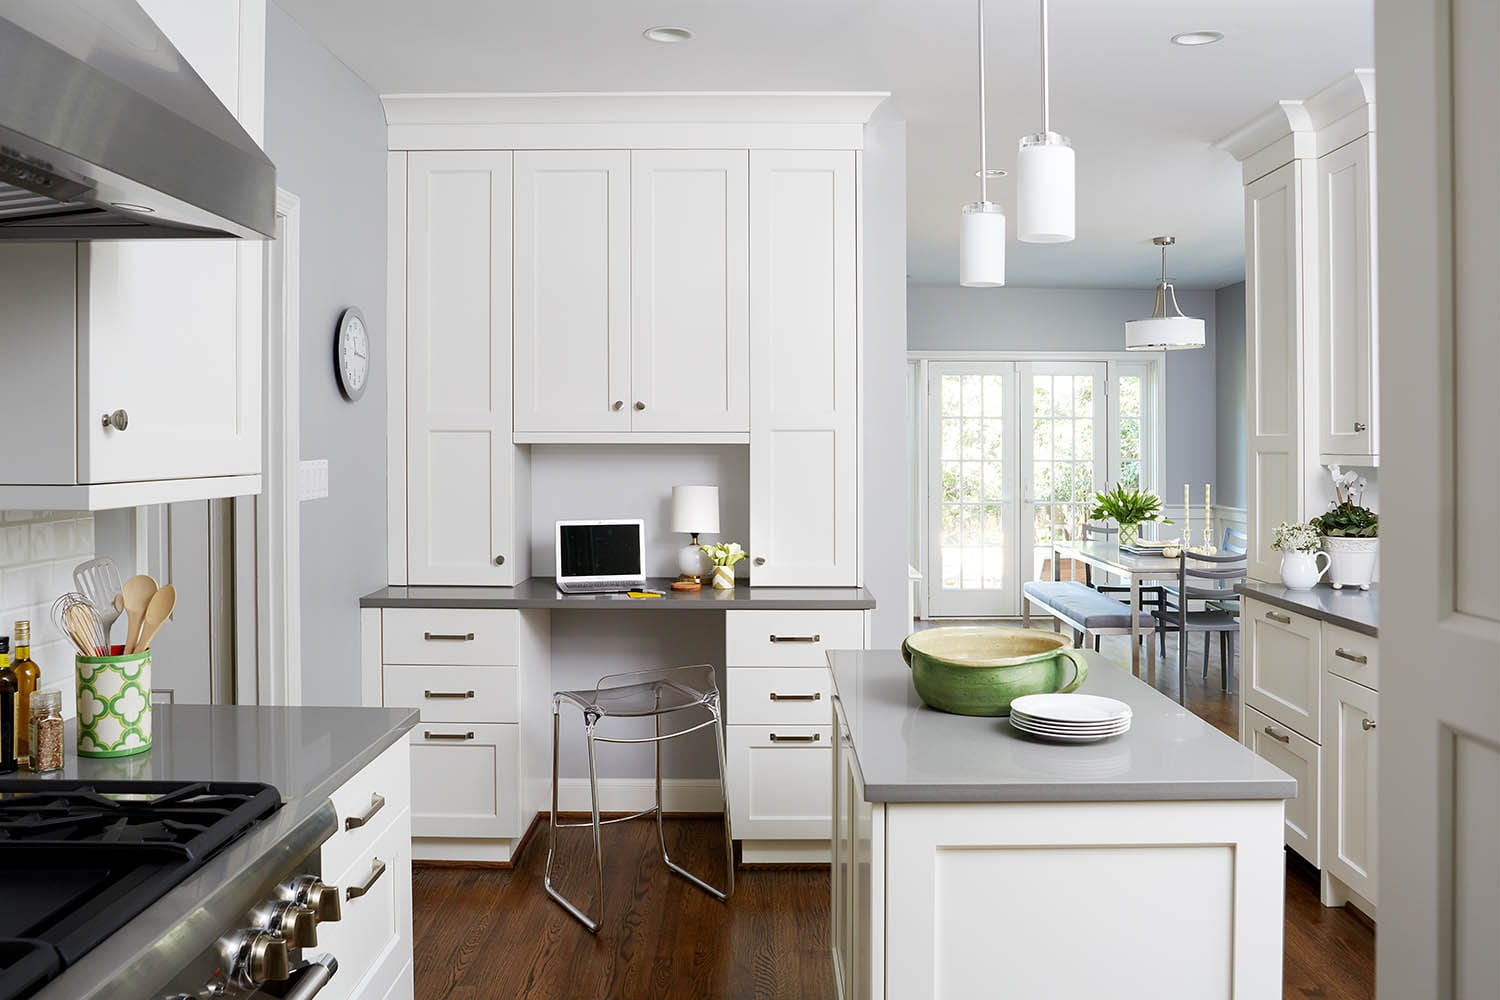 Chevy Chase, MD Top-nothc Home Renovation Contractors